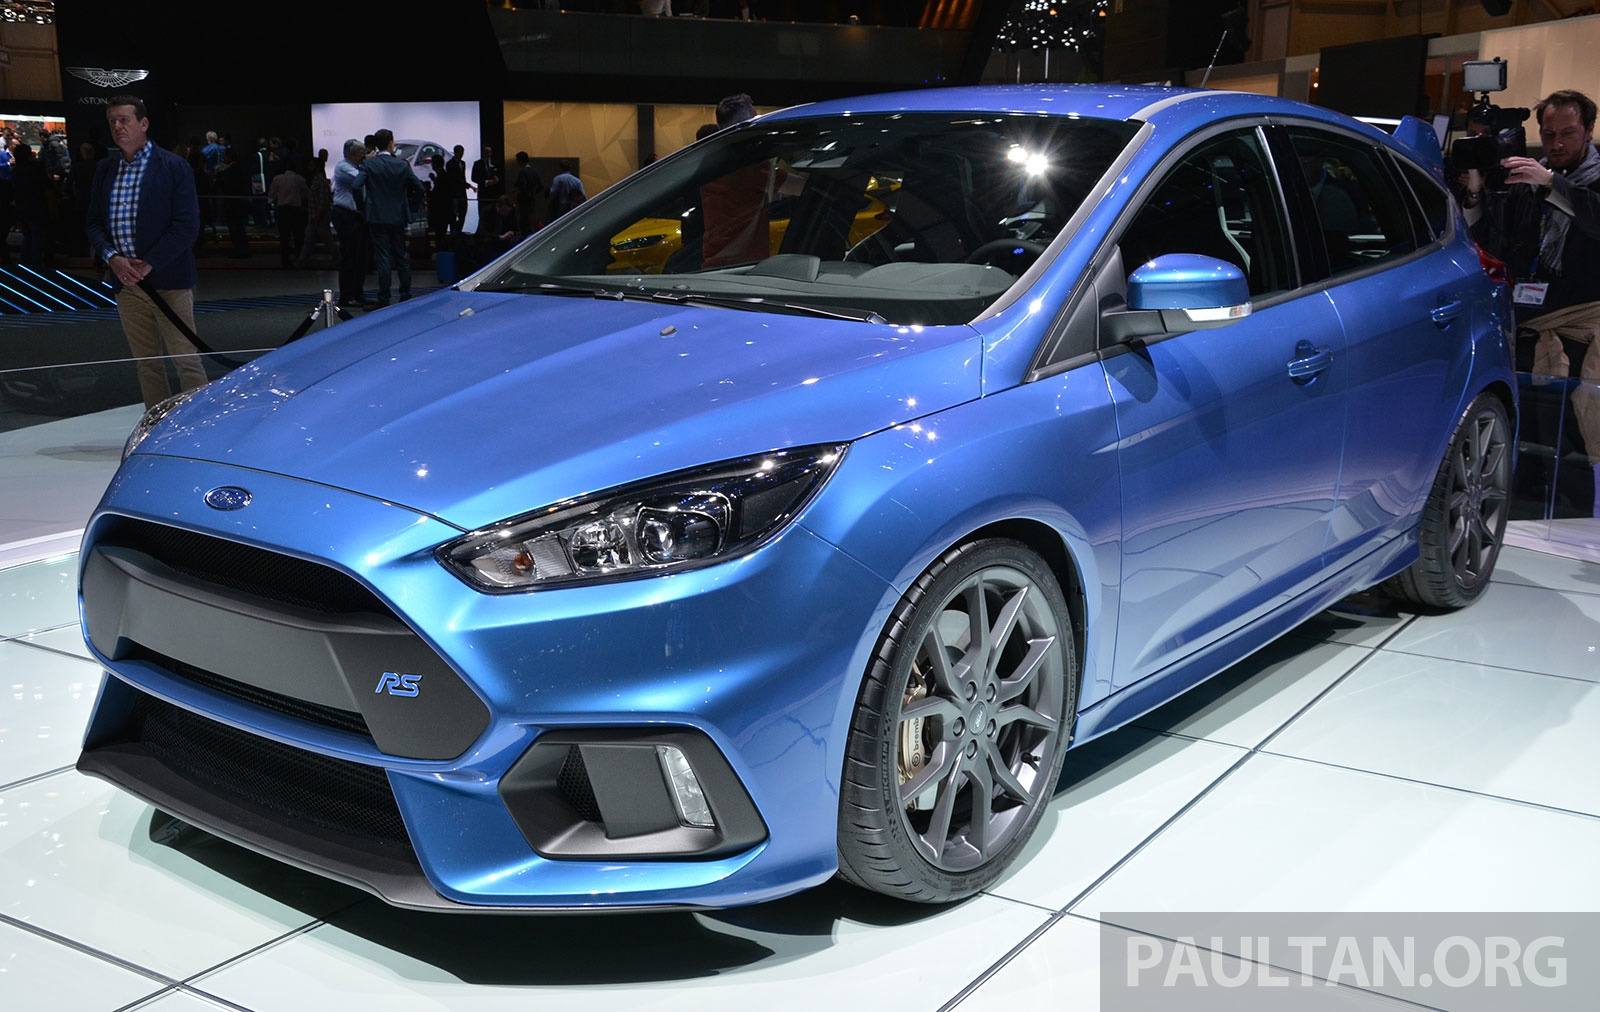 2016 ford focus rs specs confirmed 350 ps  470 nm ford focus rs 2016 specifications ford focus rs 2016 specifications